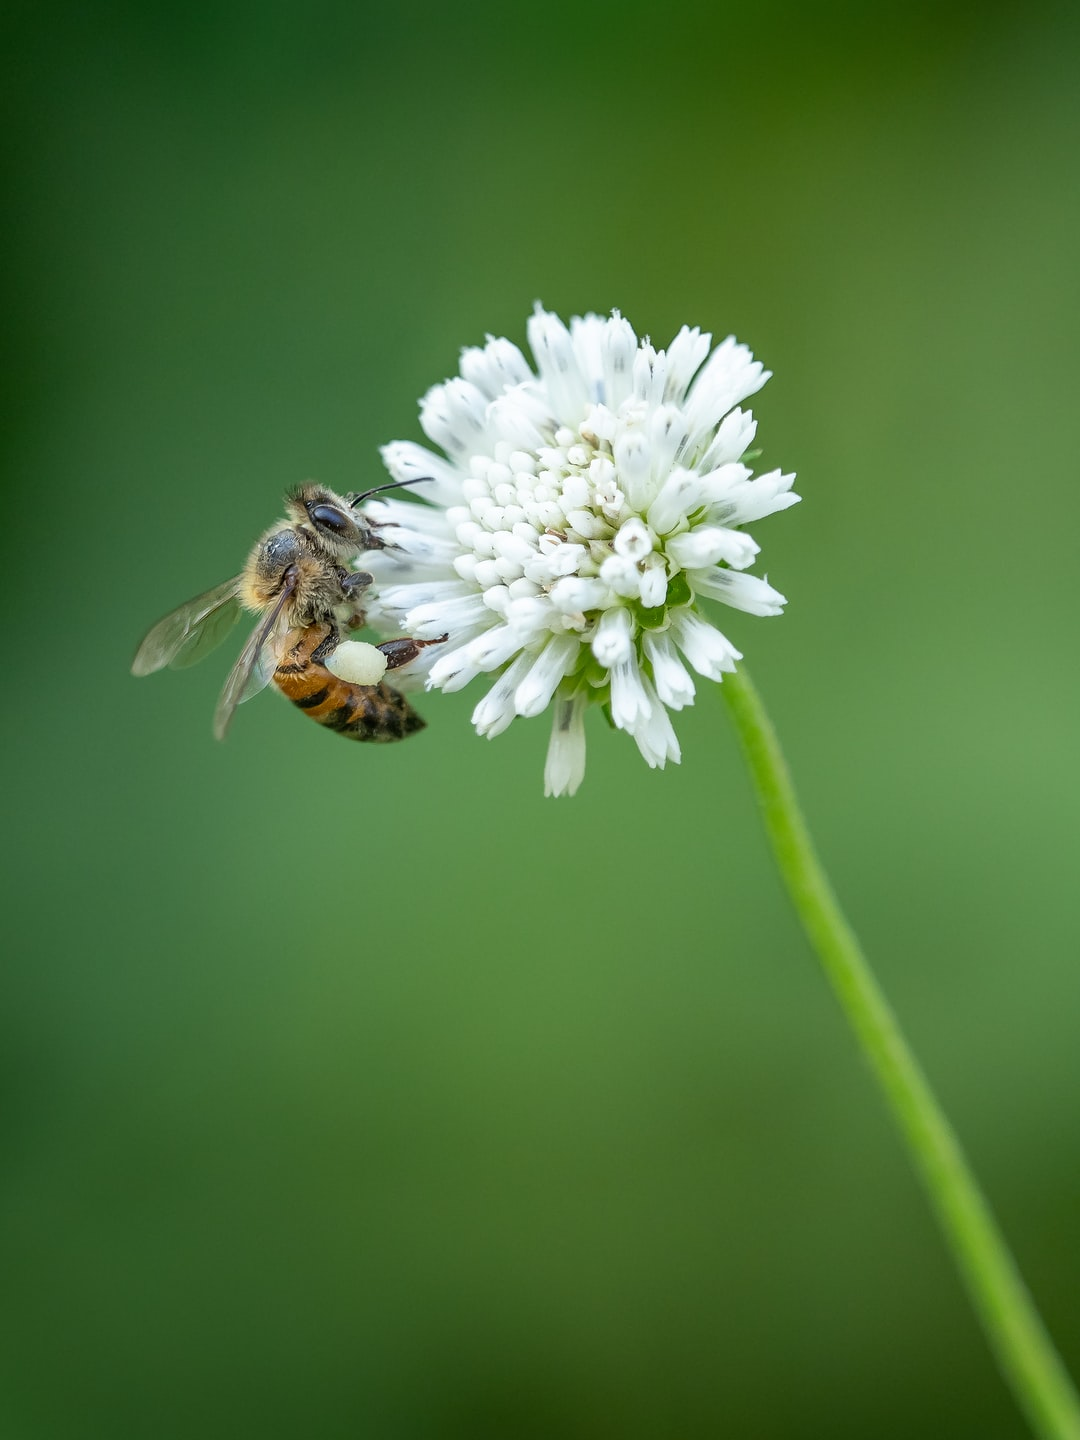 A common honey bee on a clover flower in the Manuel Antonio area of Costa Rica